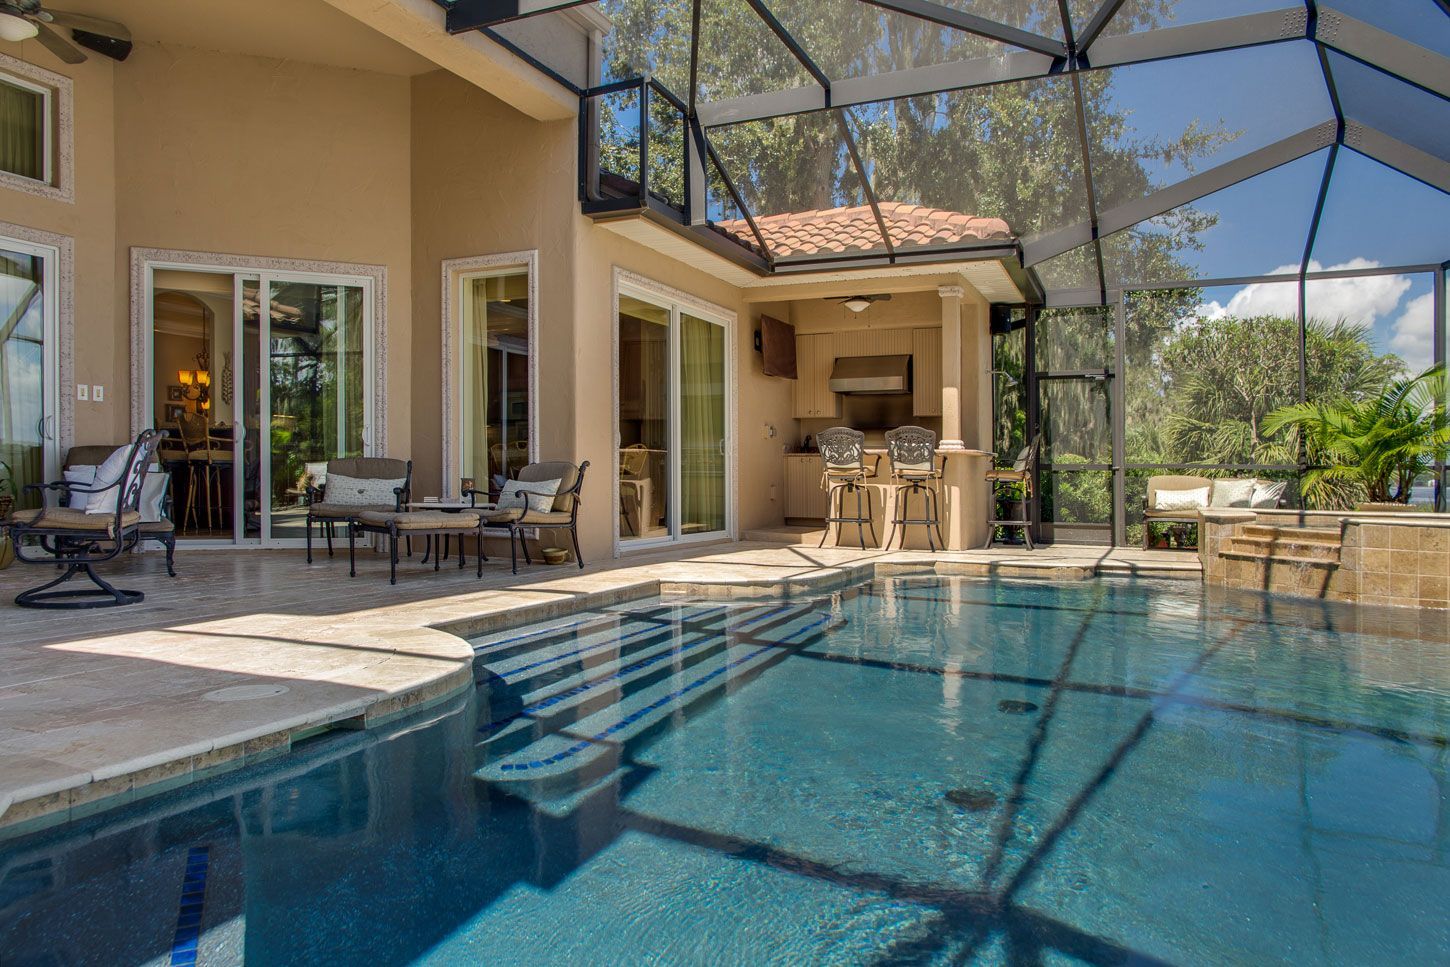 Pin by Homes by Southern Image on Pools & Outside Living ... on Southern Pools And Outdoor Living  id=44162